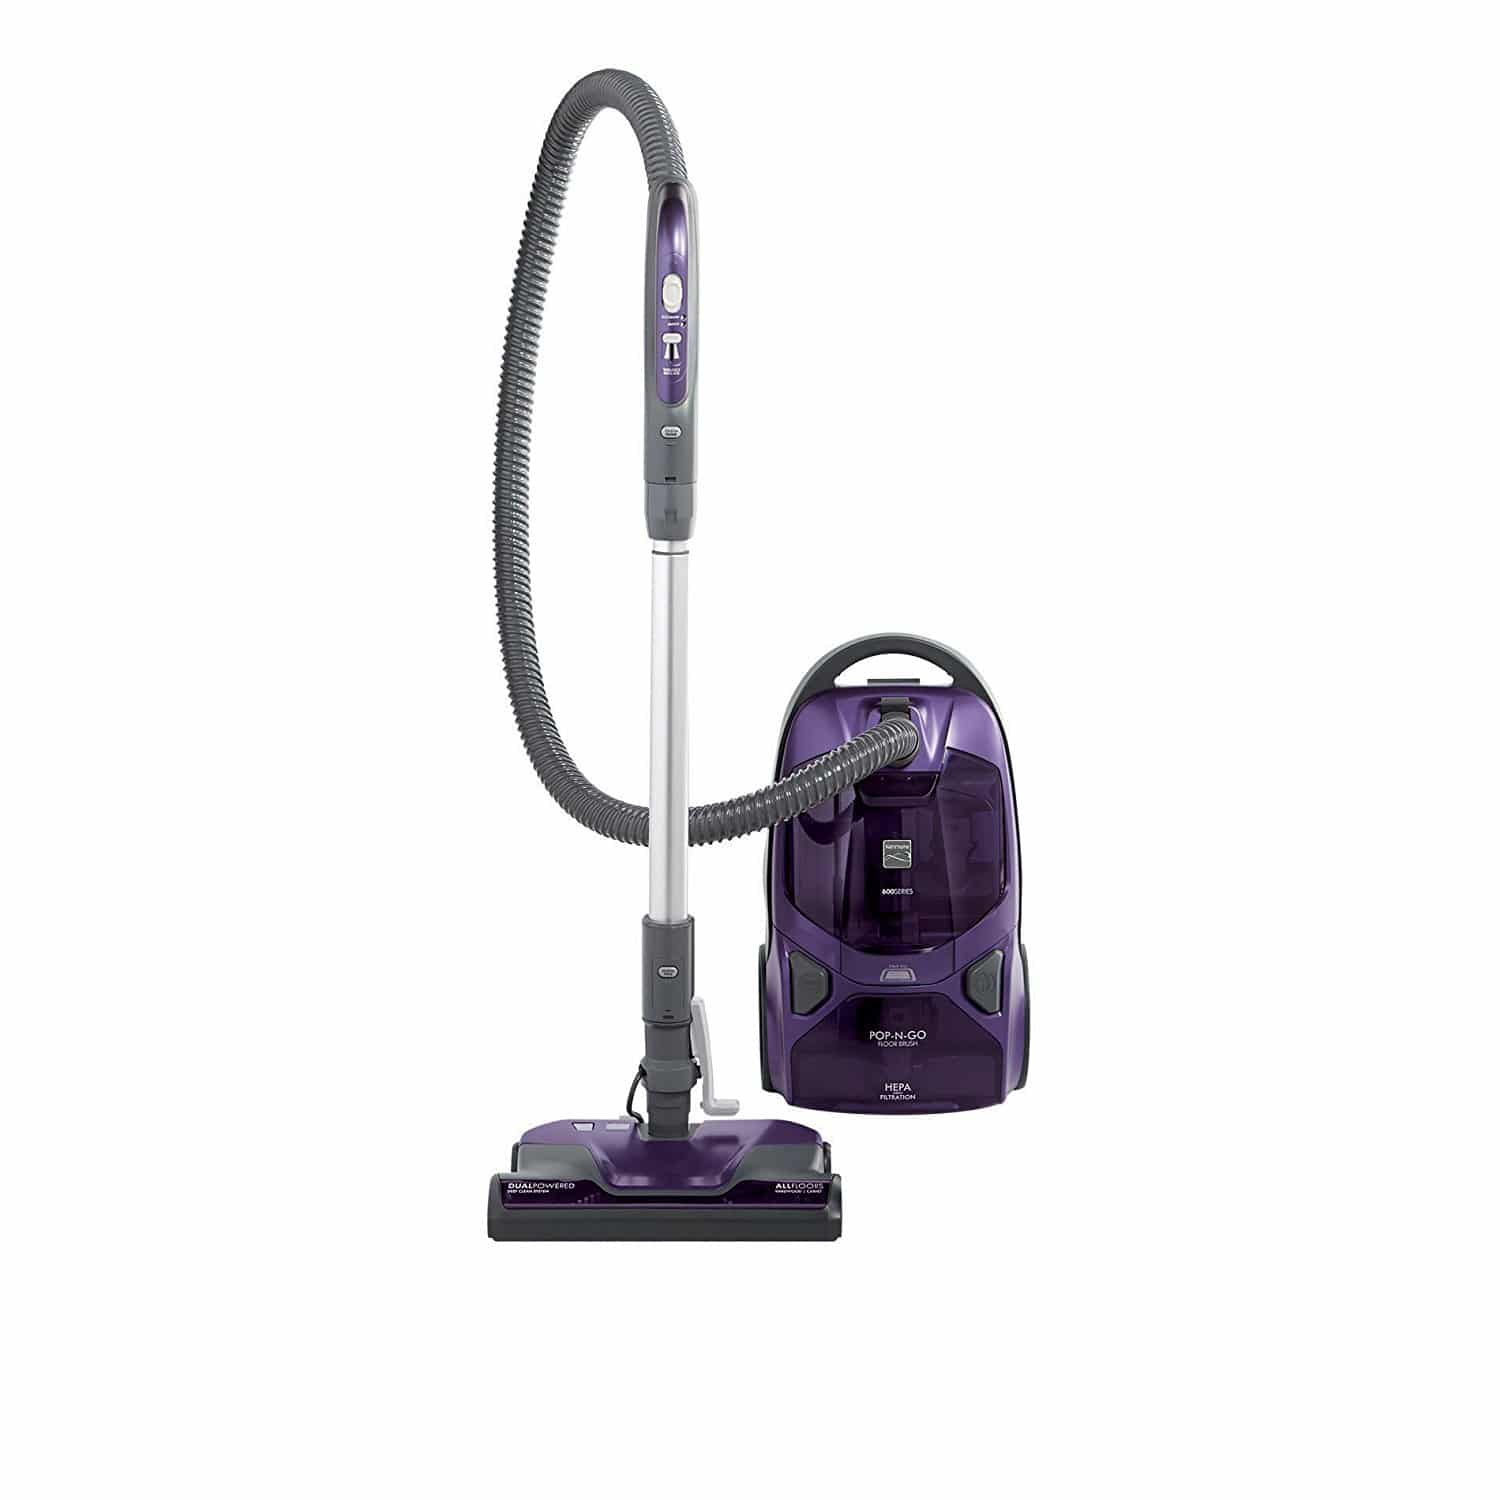 Sofa Vacuum Cleaner Brush Top 5 Best Wet Dry Vacuum Cleaner For Home Reviews 2019